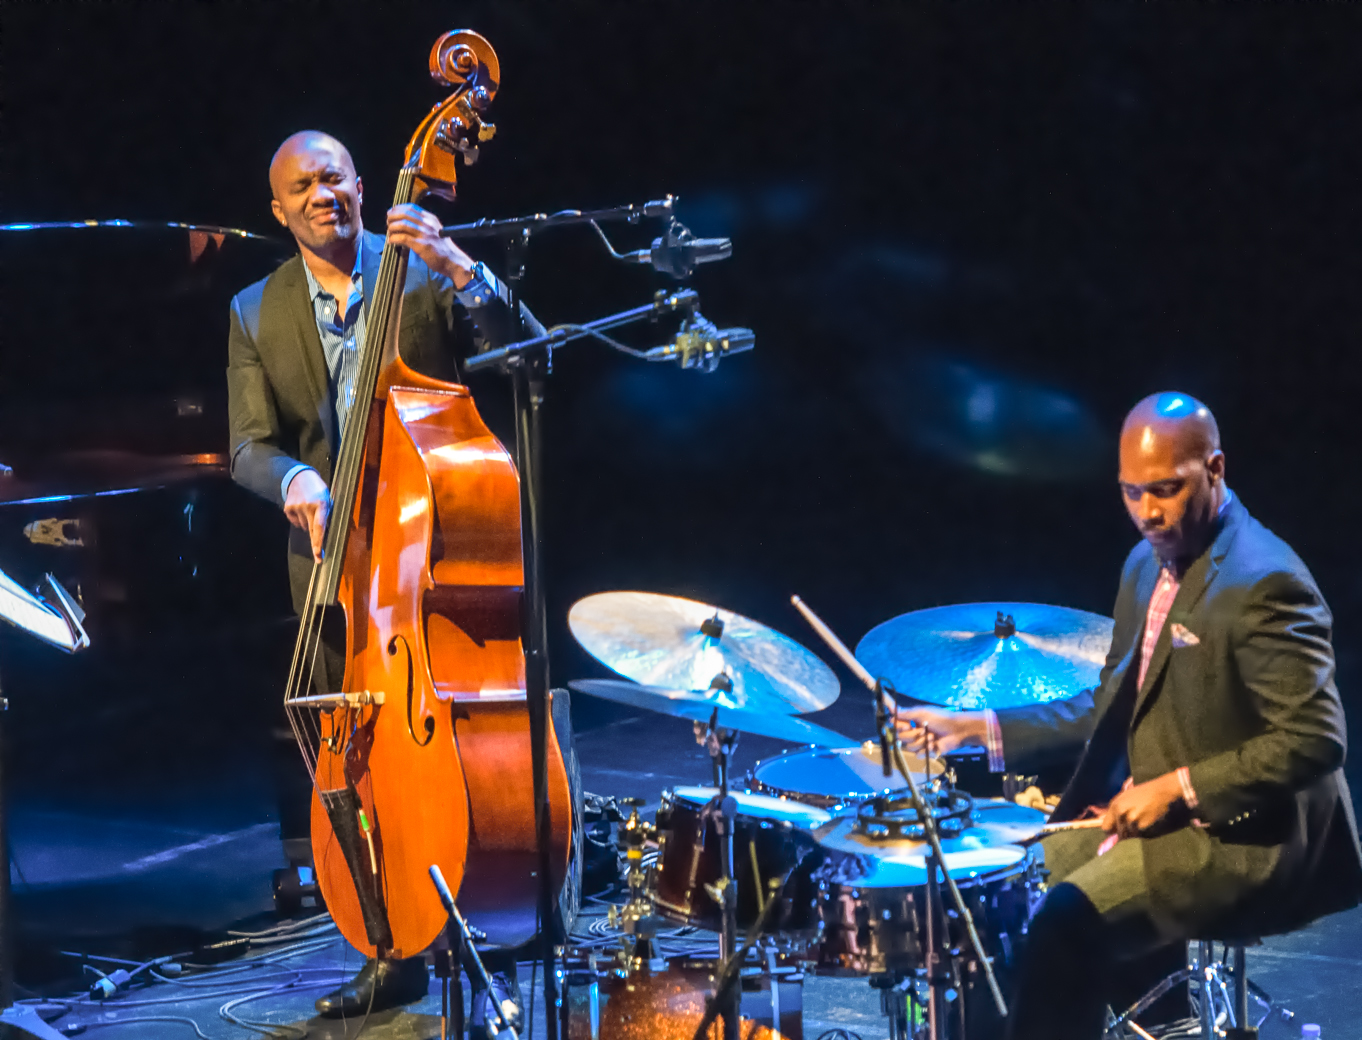 Reuben rogers and eric harland with the charles lloyd quartet at the montreal international jazz festival 2013